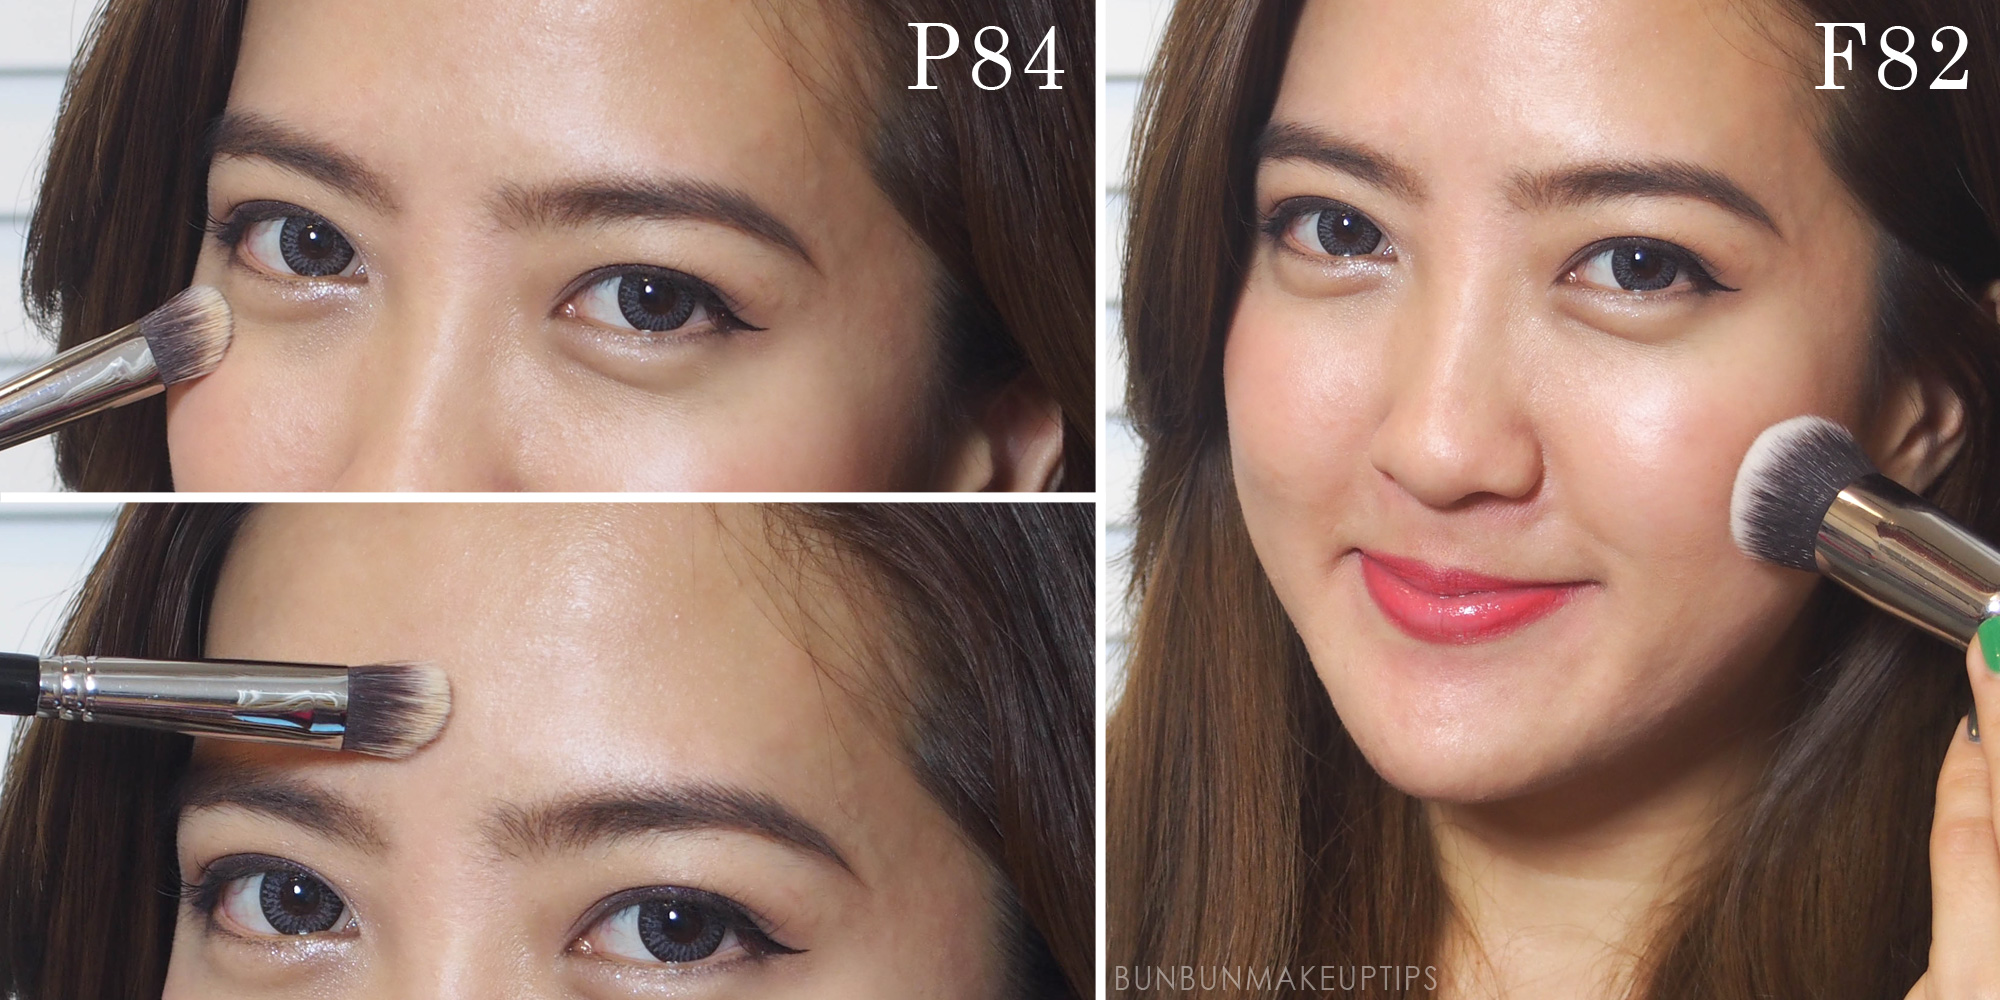 Gumtree-Doll-To-Doll-Cosmetics-Collaboration_5_Sigma-P84-F82